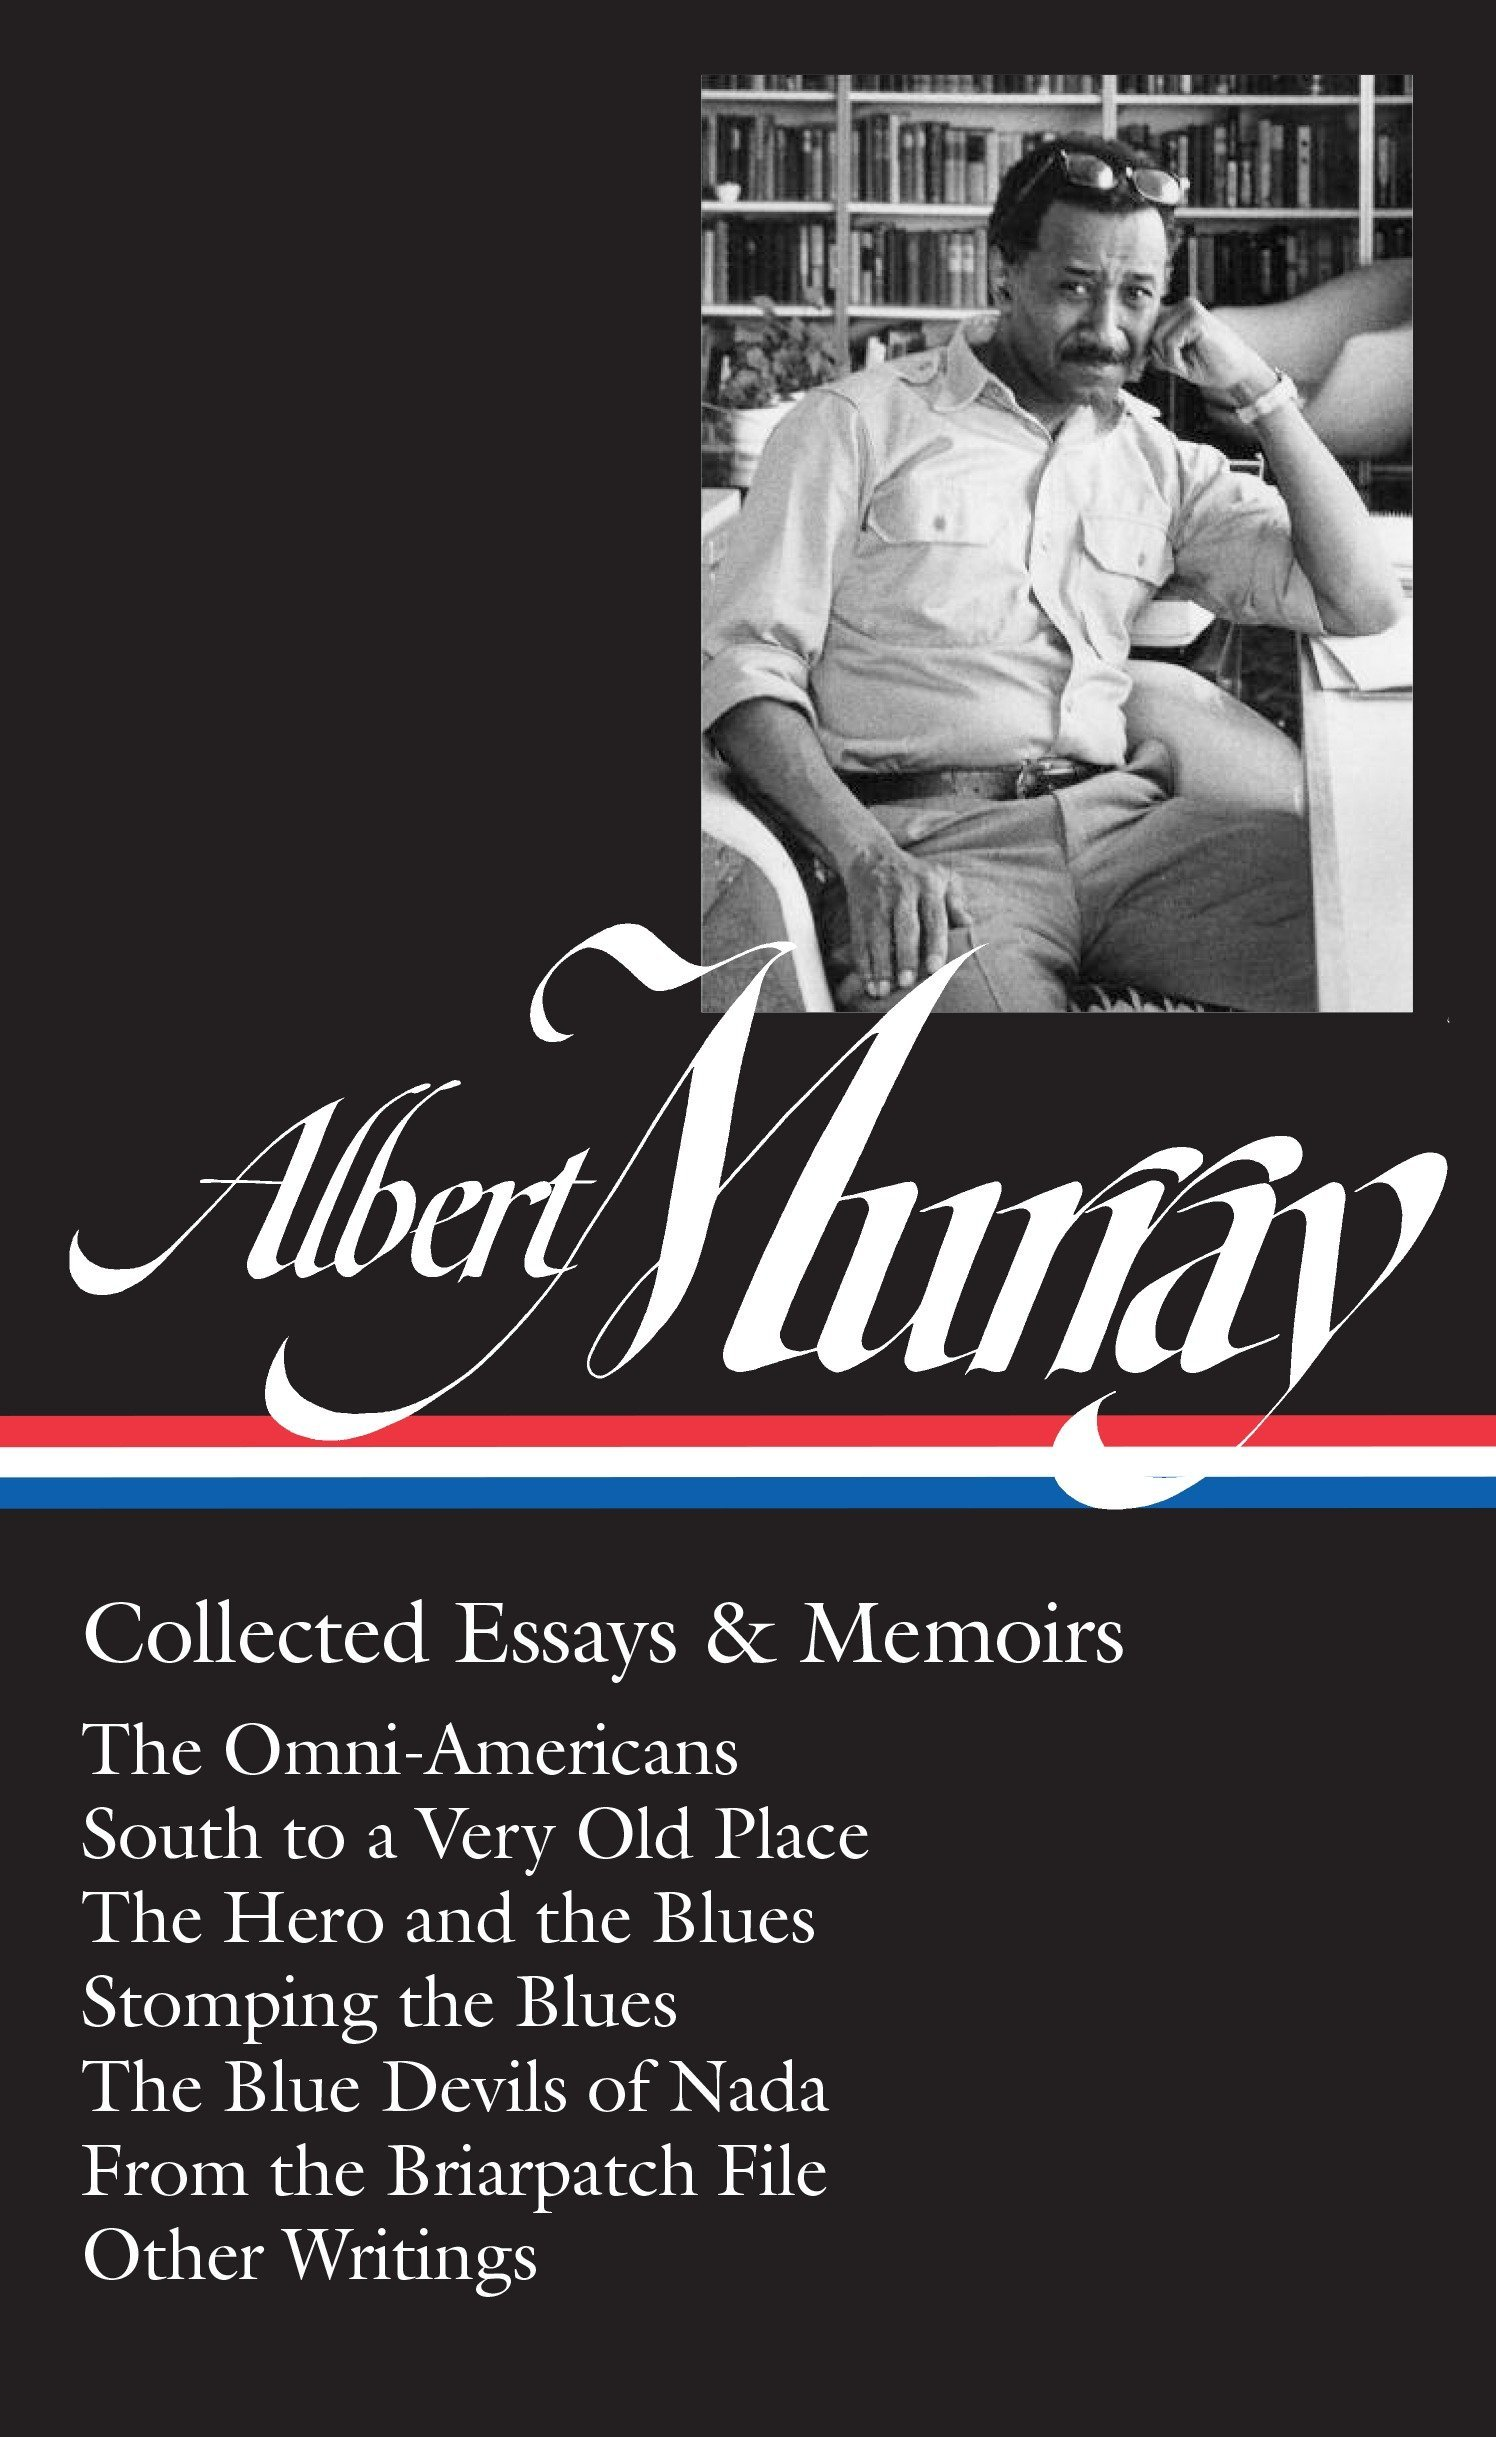 Albert Murray: Collected Essays & Memoirs (LOA #284): The Omni-Americans / South to a Very Old Place / The Hero and the Blues /  Stomping the Blues / ... (Library of America Albert Murray Edition) by Library of America